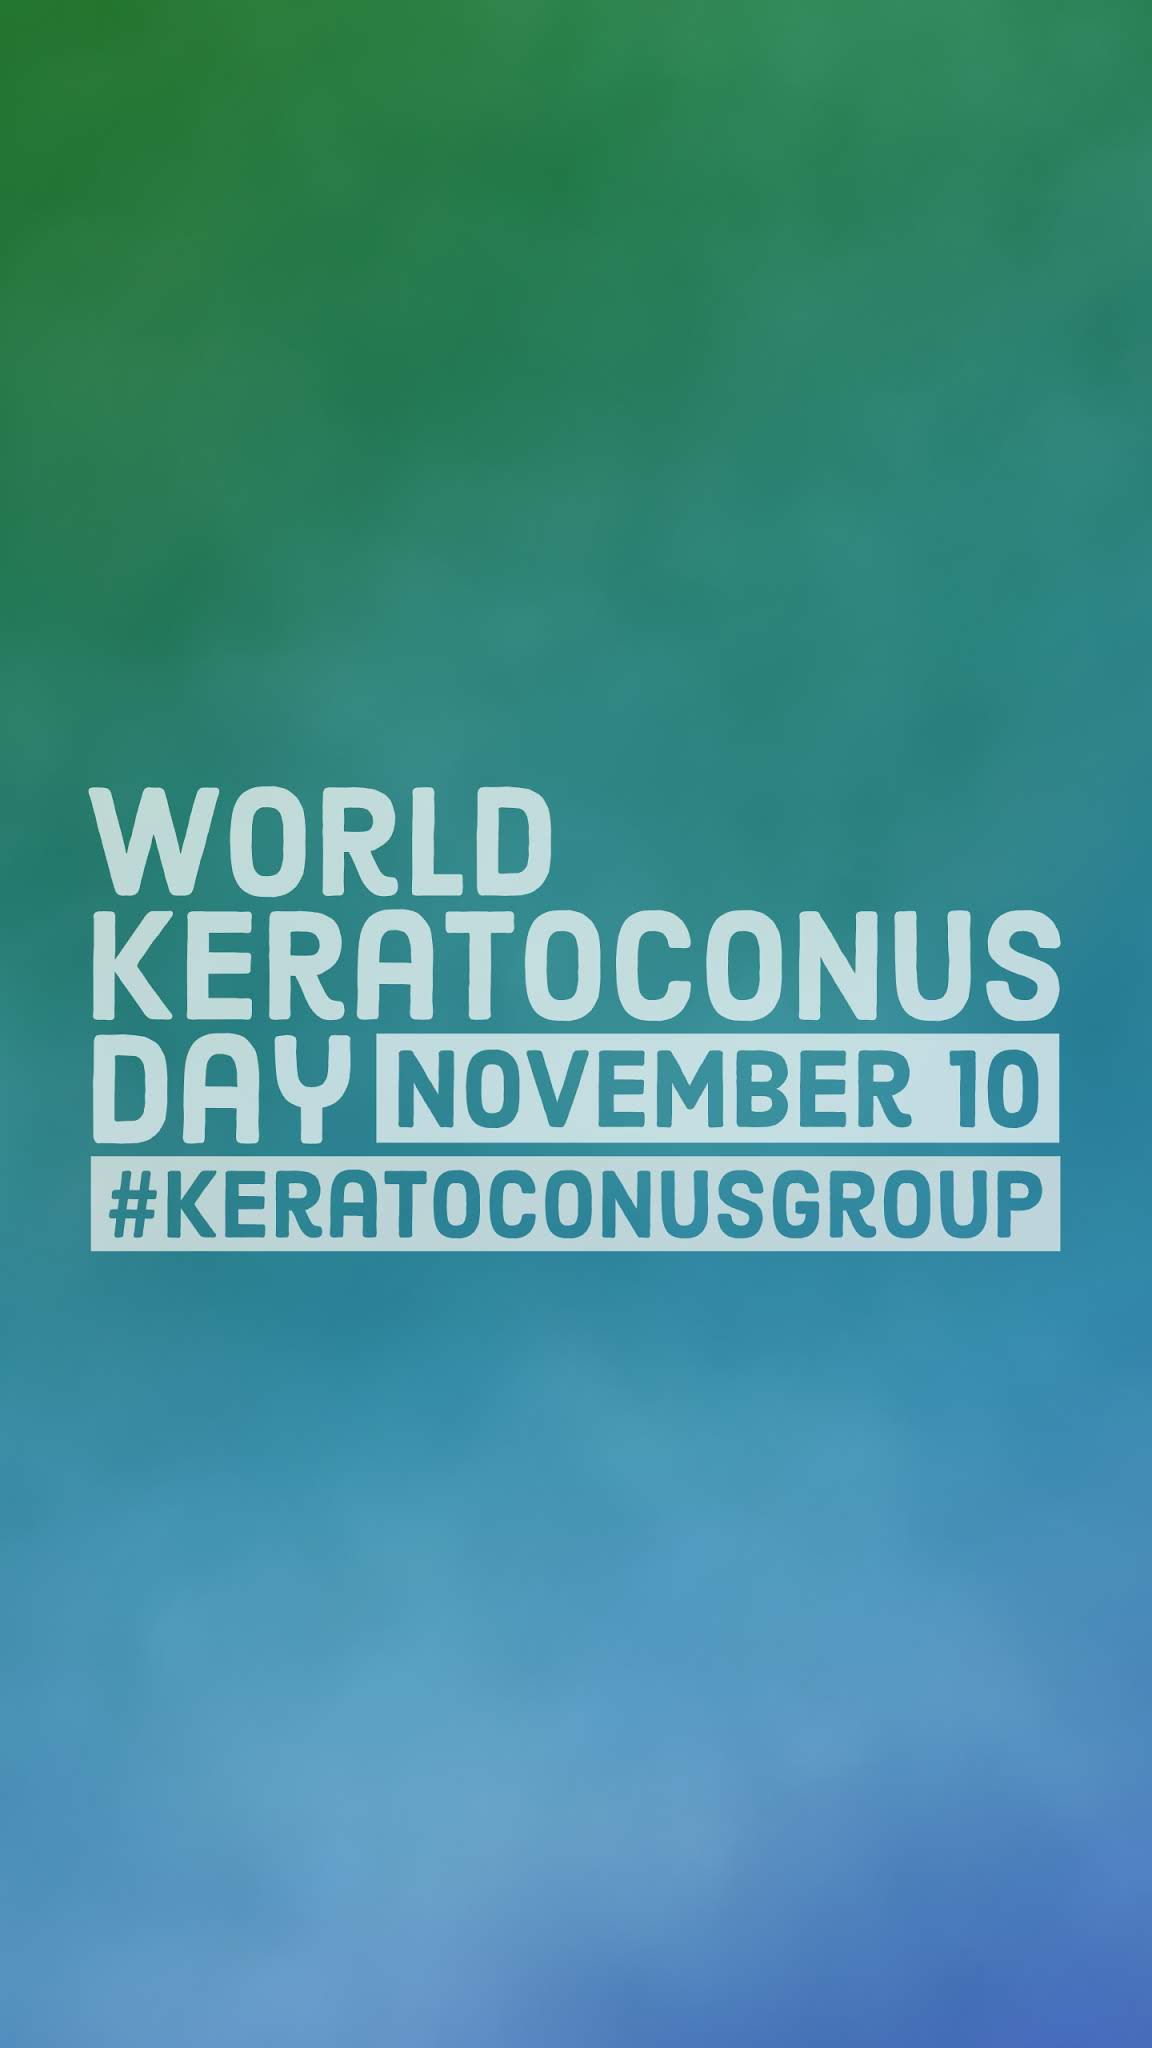 National Keratoconus Day 2019 Mobile Wallpaper